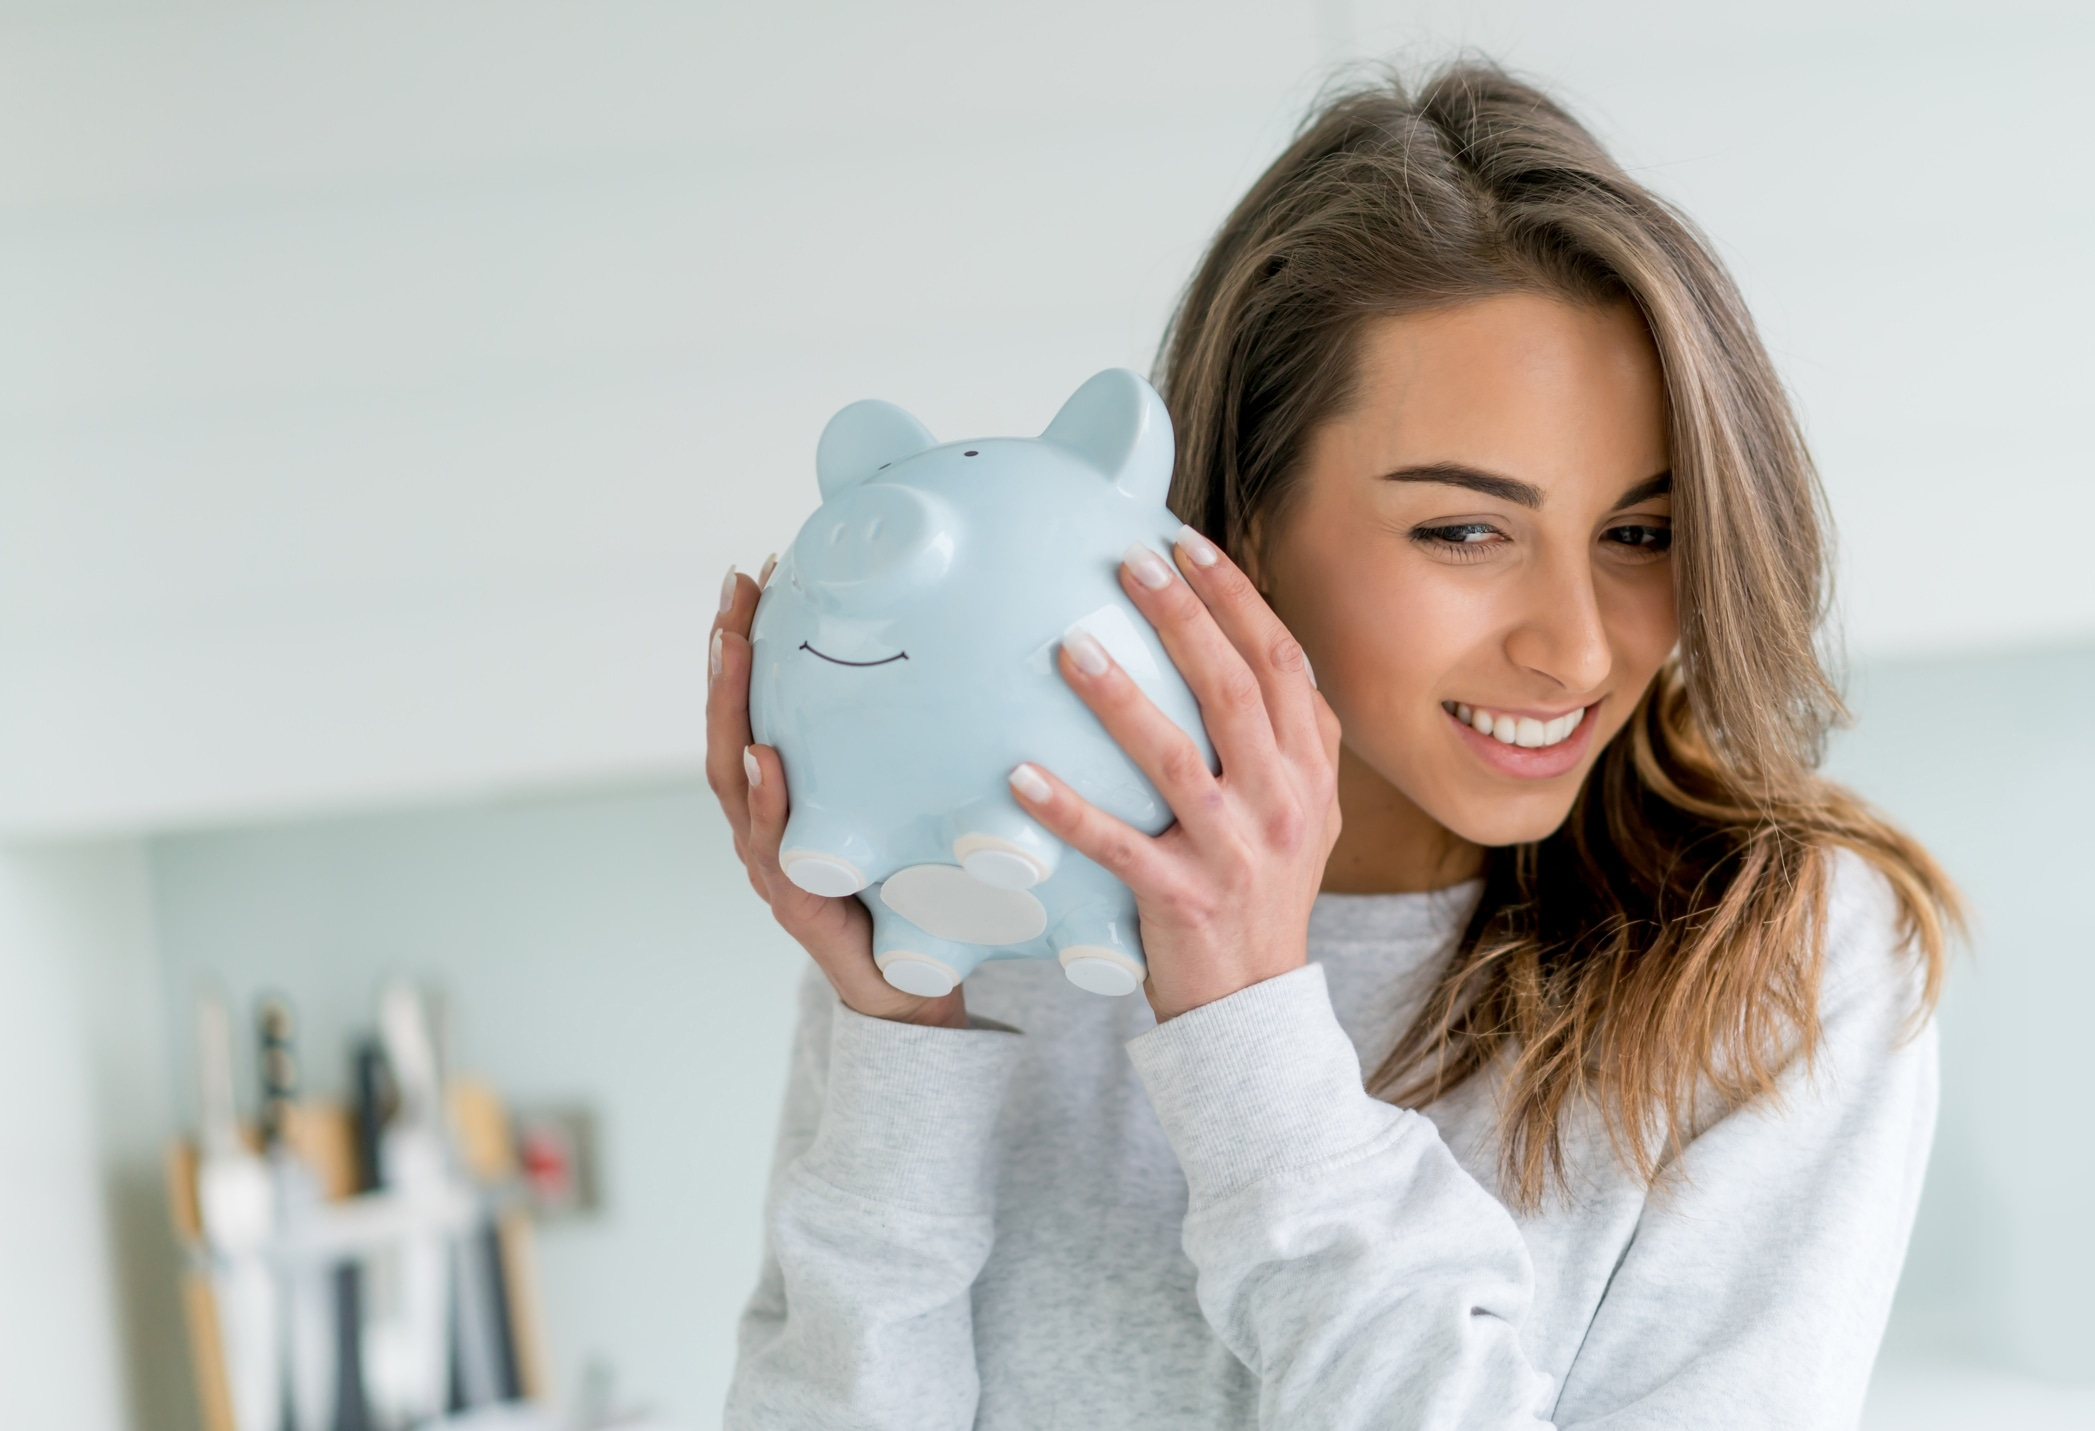 Personality Traits of the Financially Fit